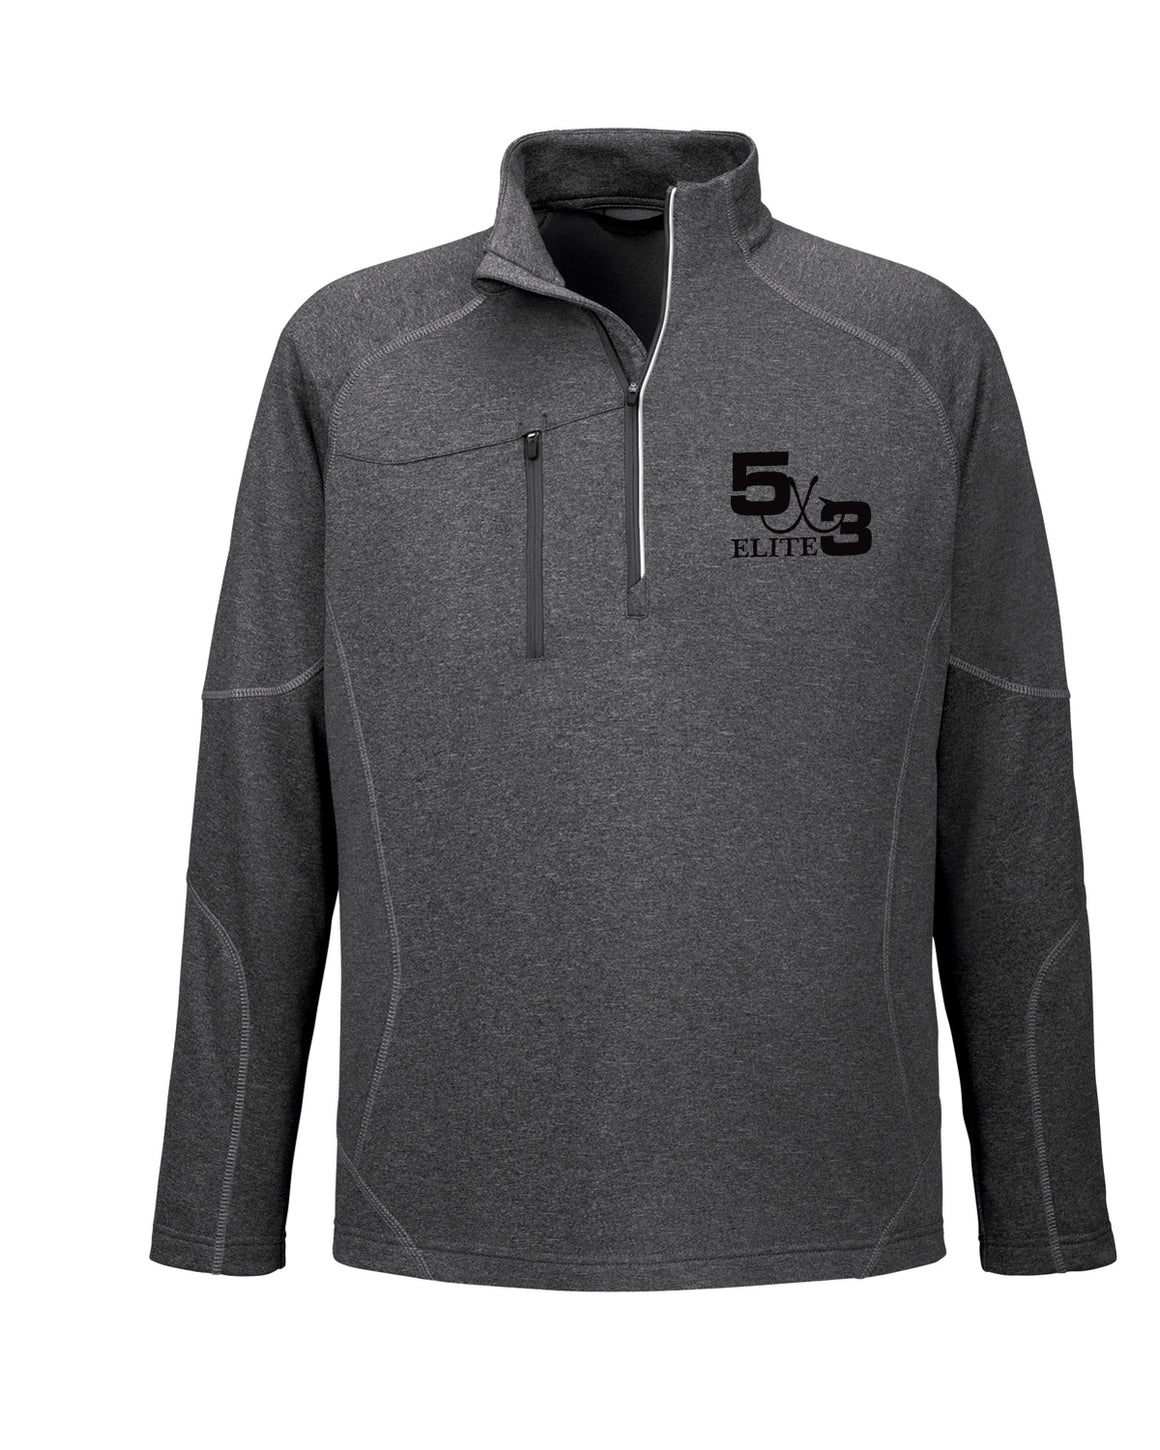 5X3 Elite Performance 1/4 zip.